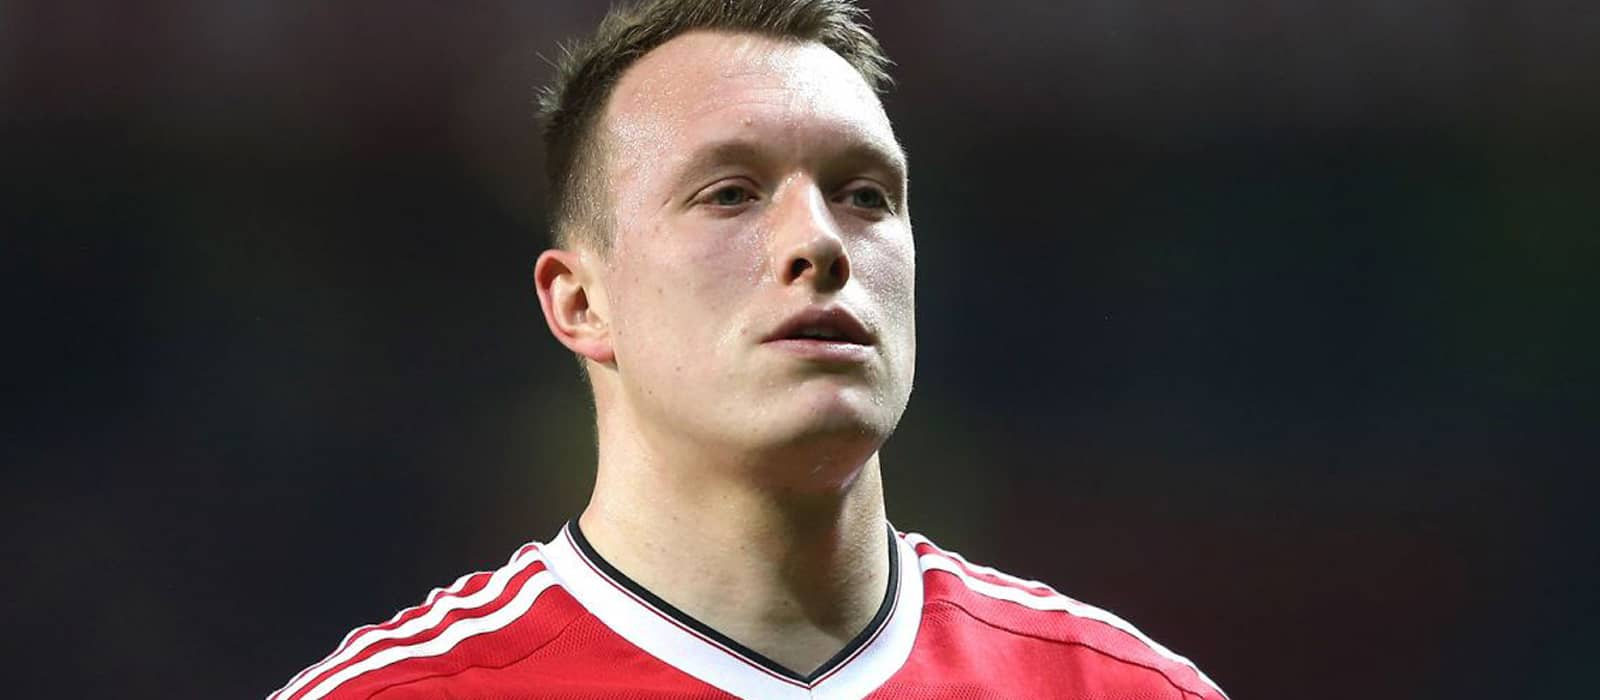 Gallery: Phil Jones training ahead of Tottenham Hotspur